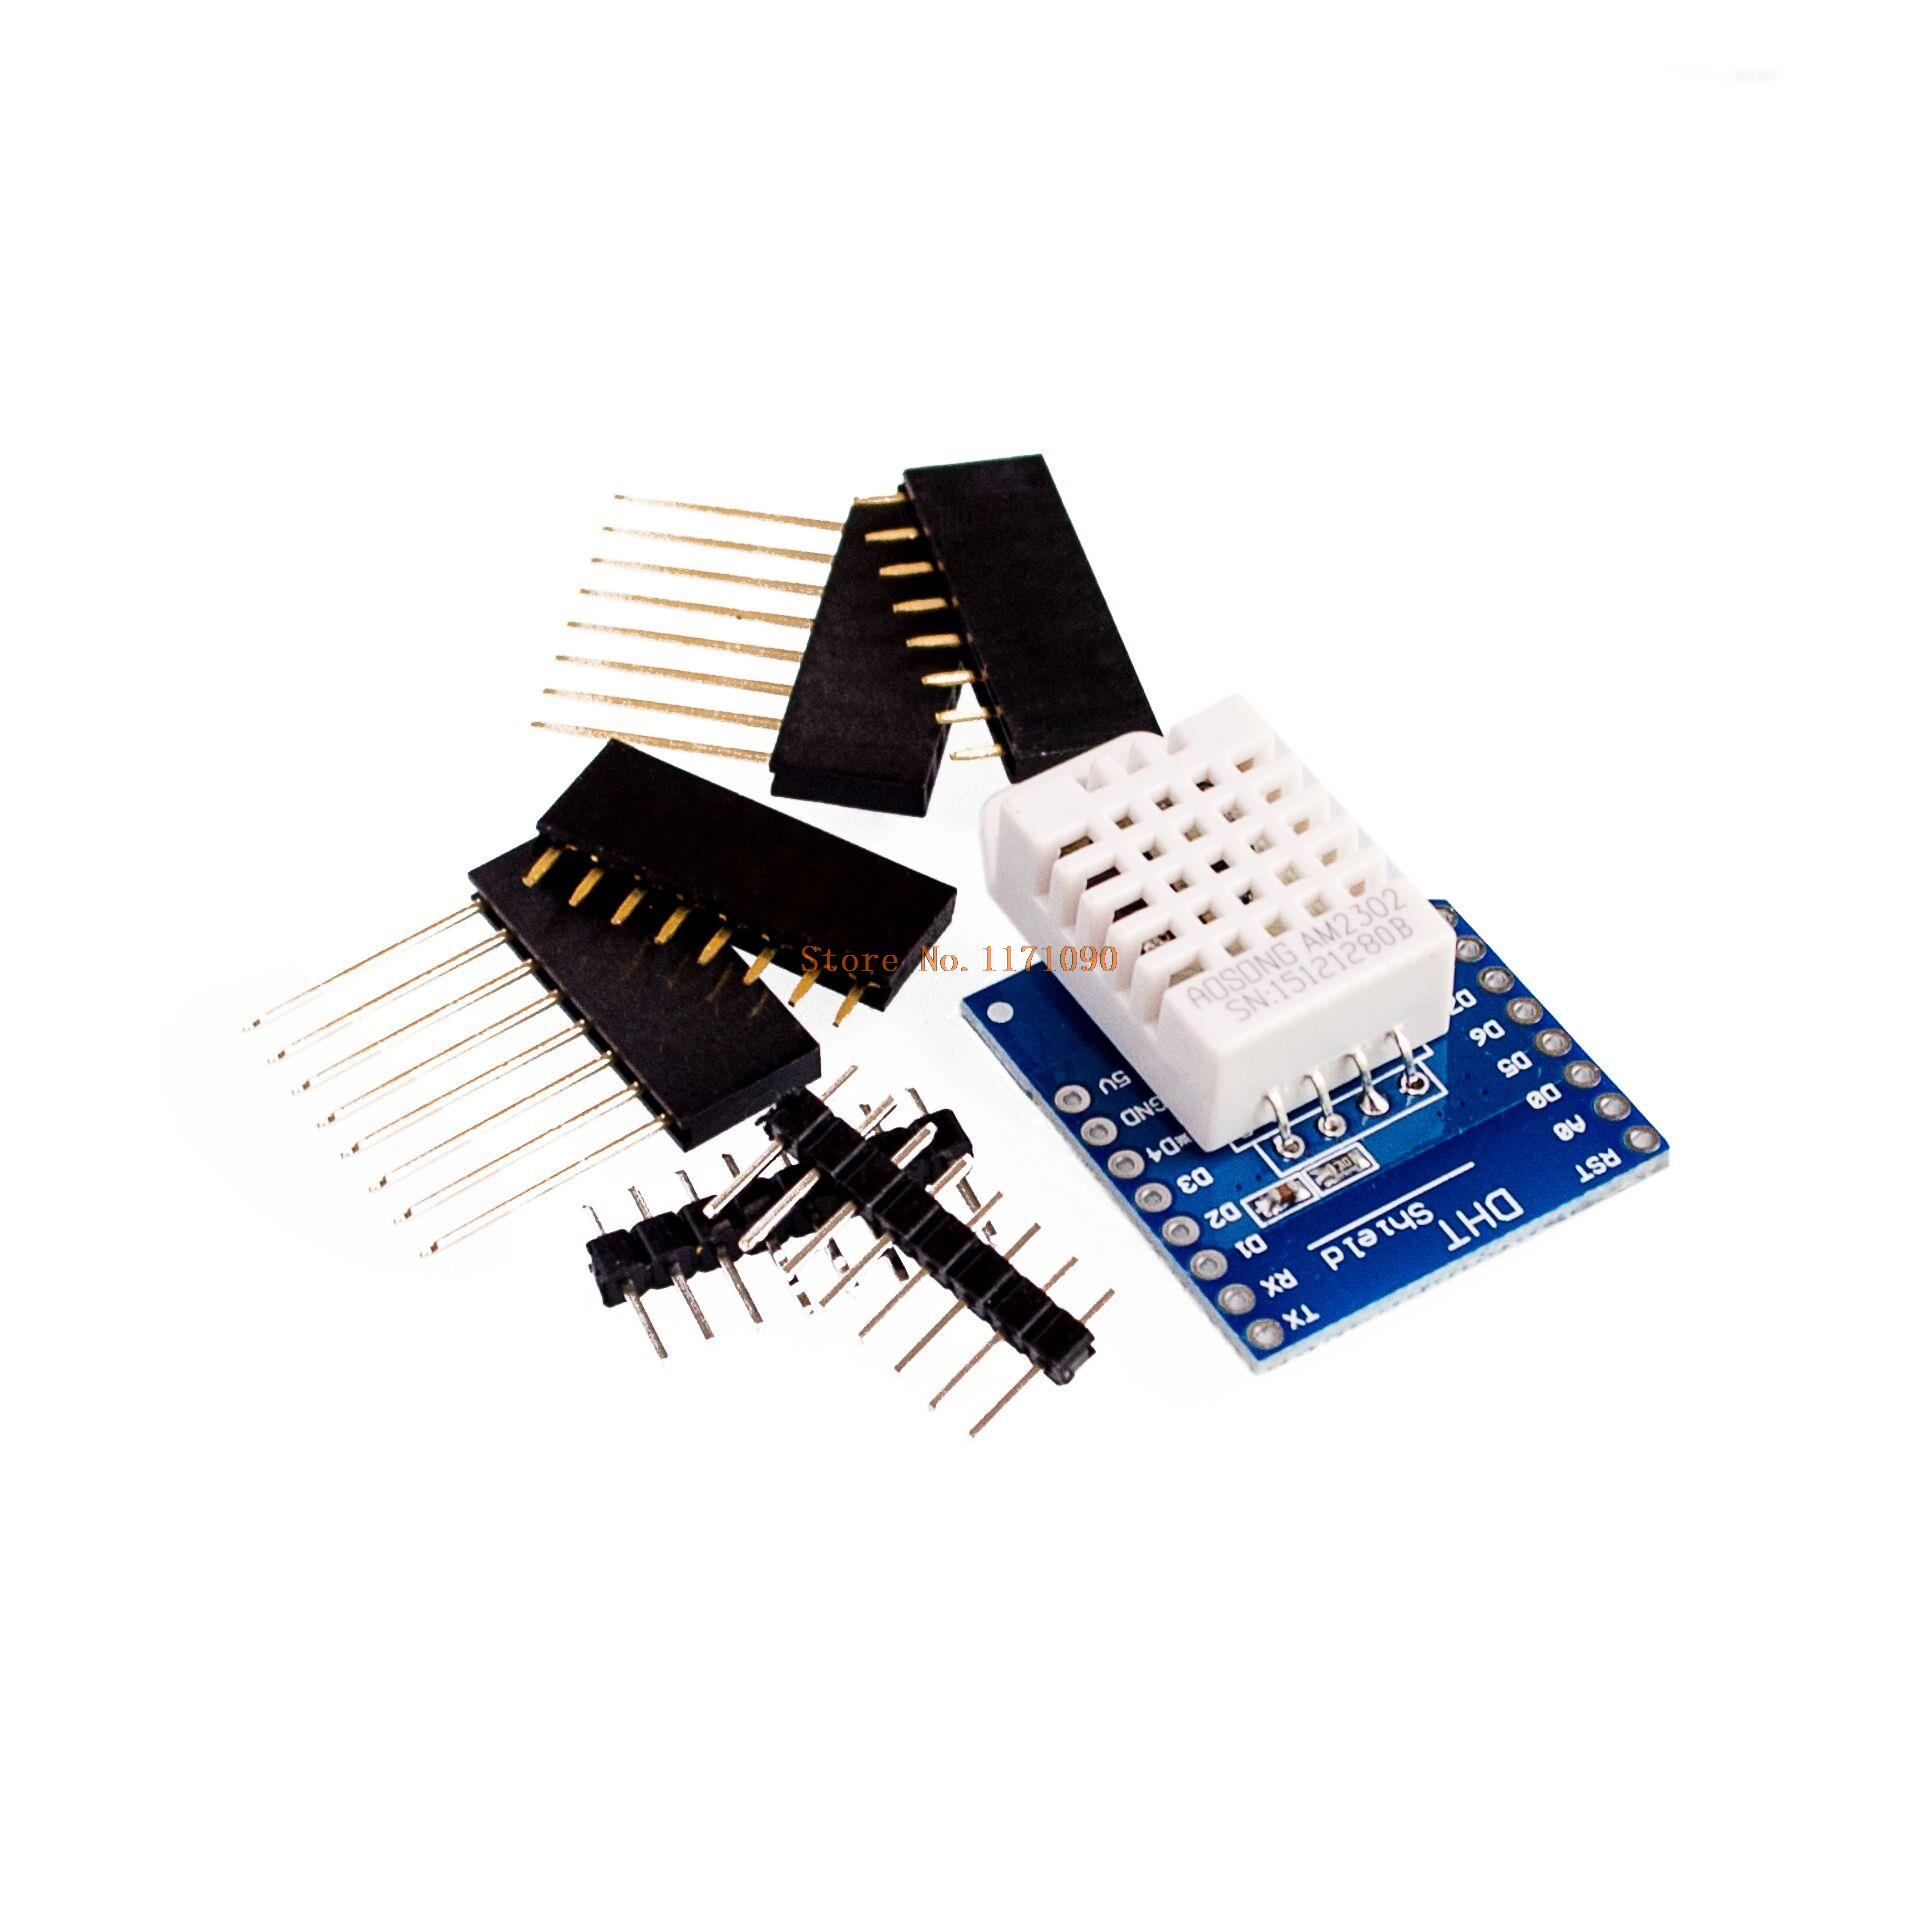 DHT Pro Shield for   D1 mini DHT22 Single-bus digital temperature and humidity sensor module sensor